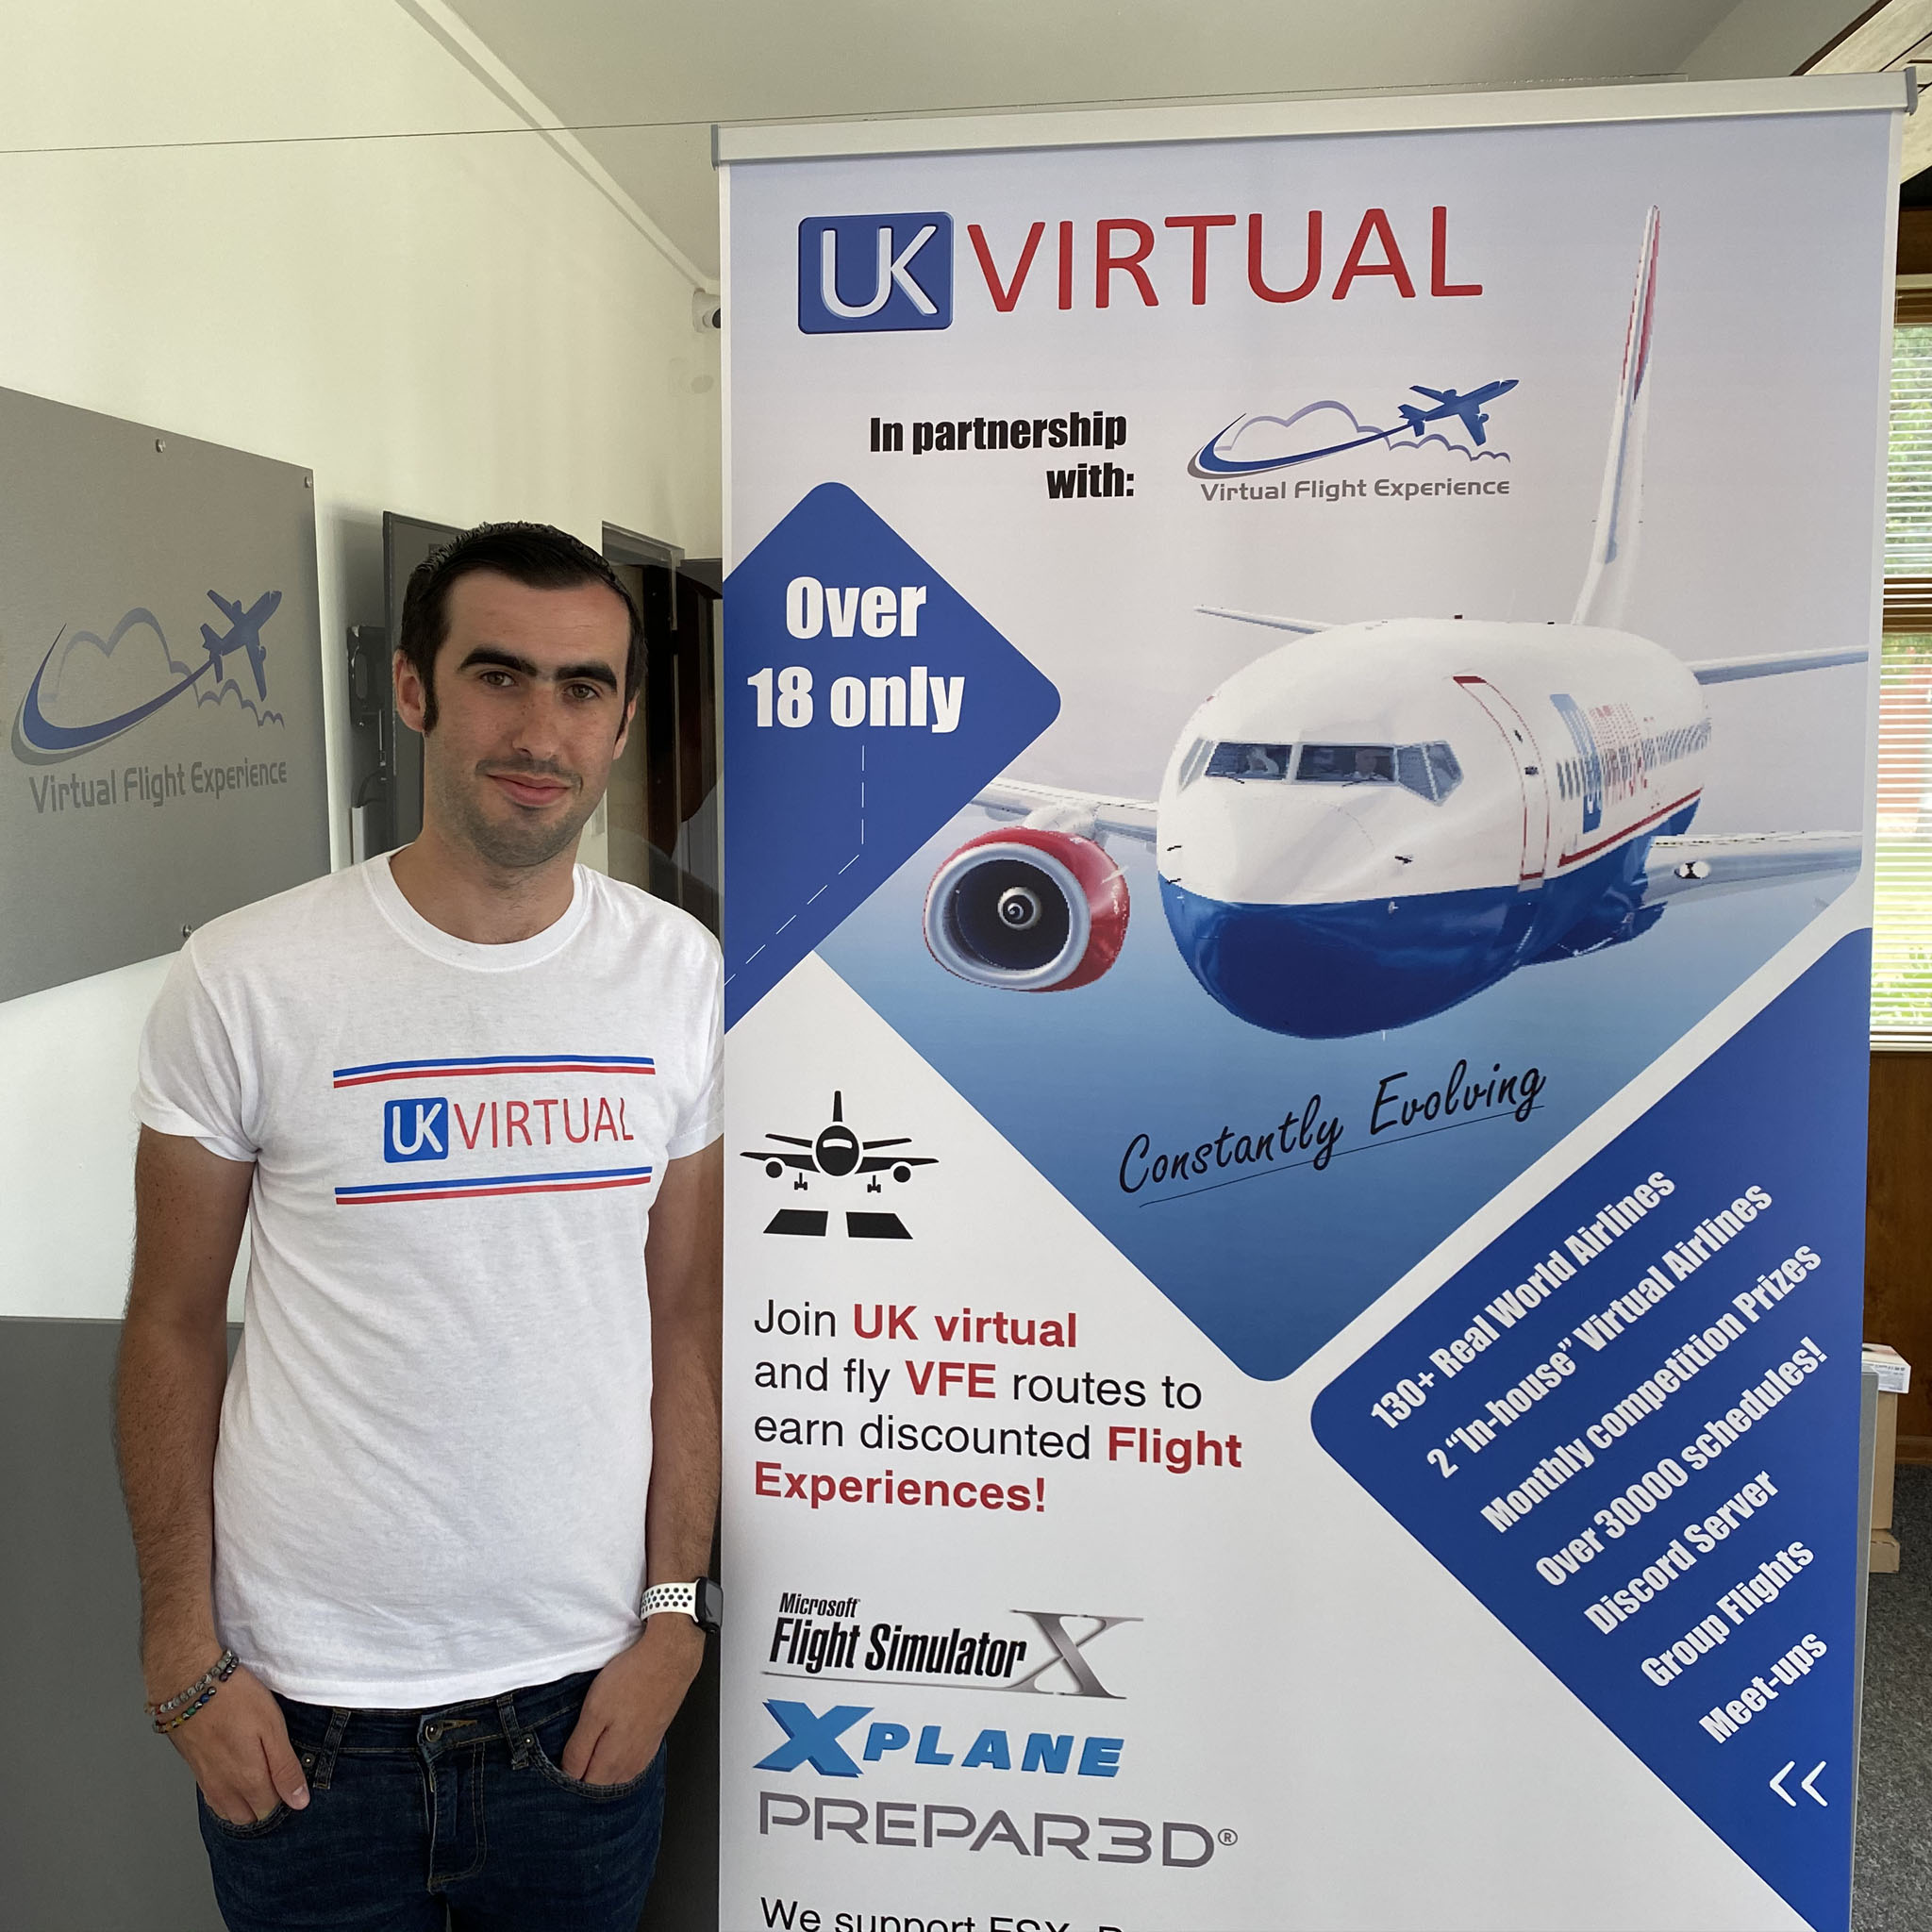 UK virtual launches flyVFE